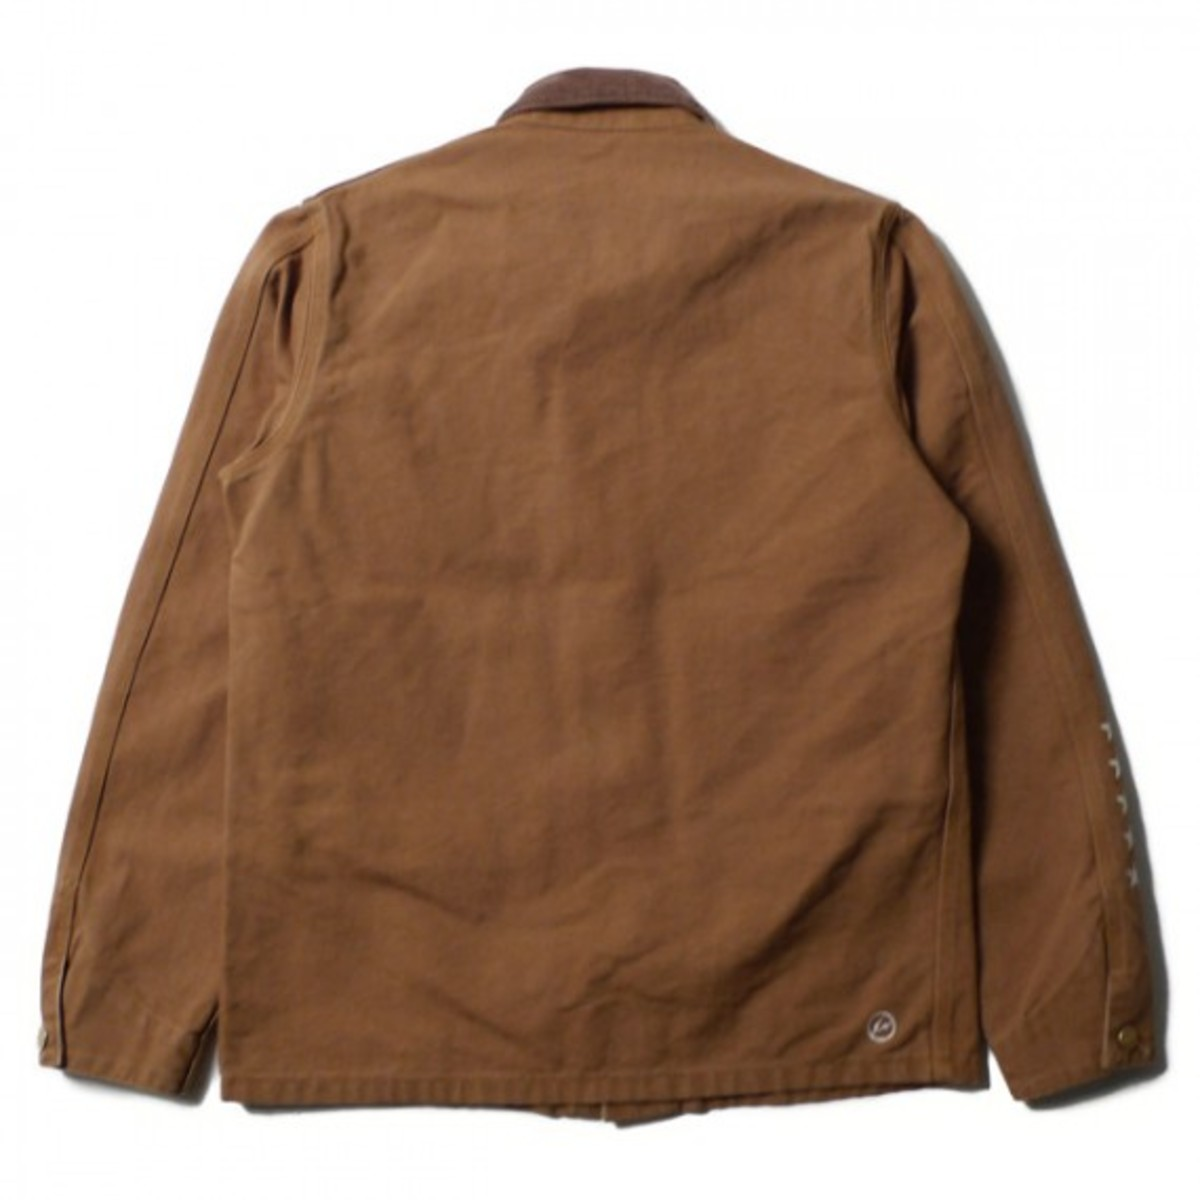 uniform-experiment-carhartt-hunting-jacket-brown-03